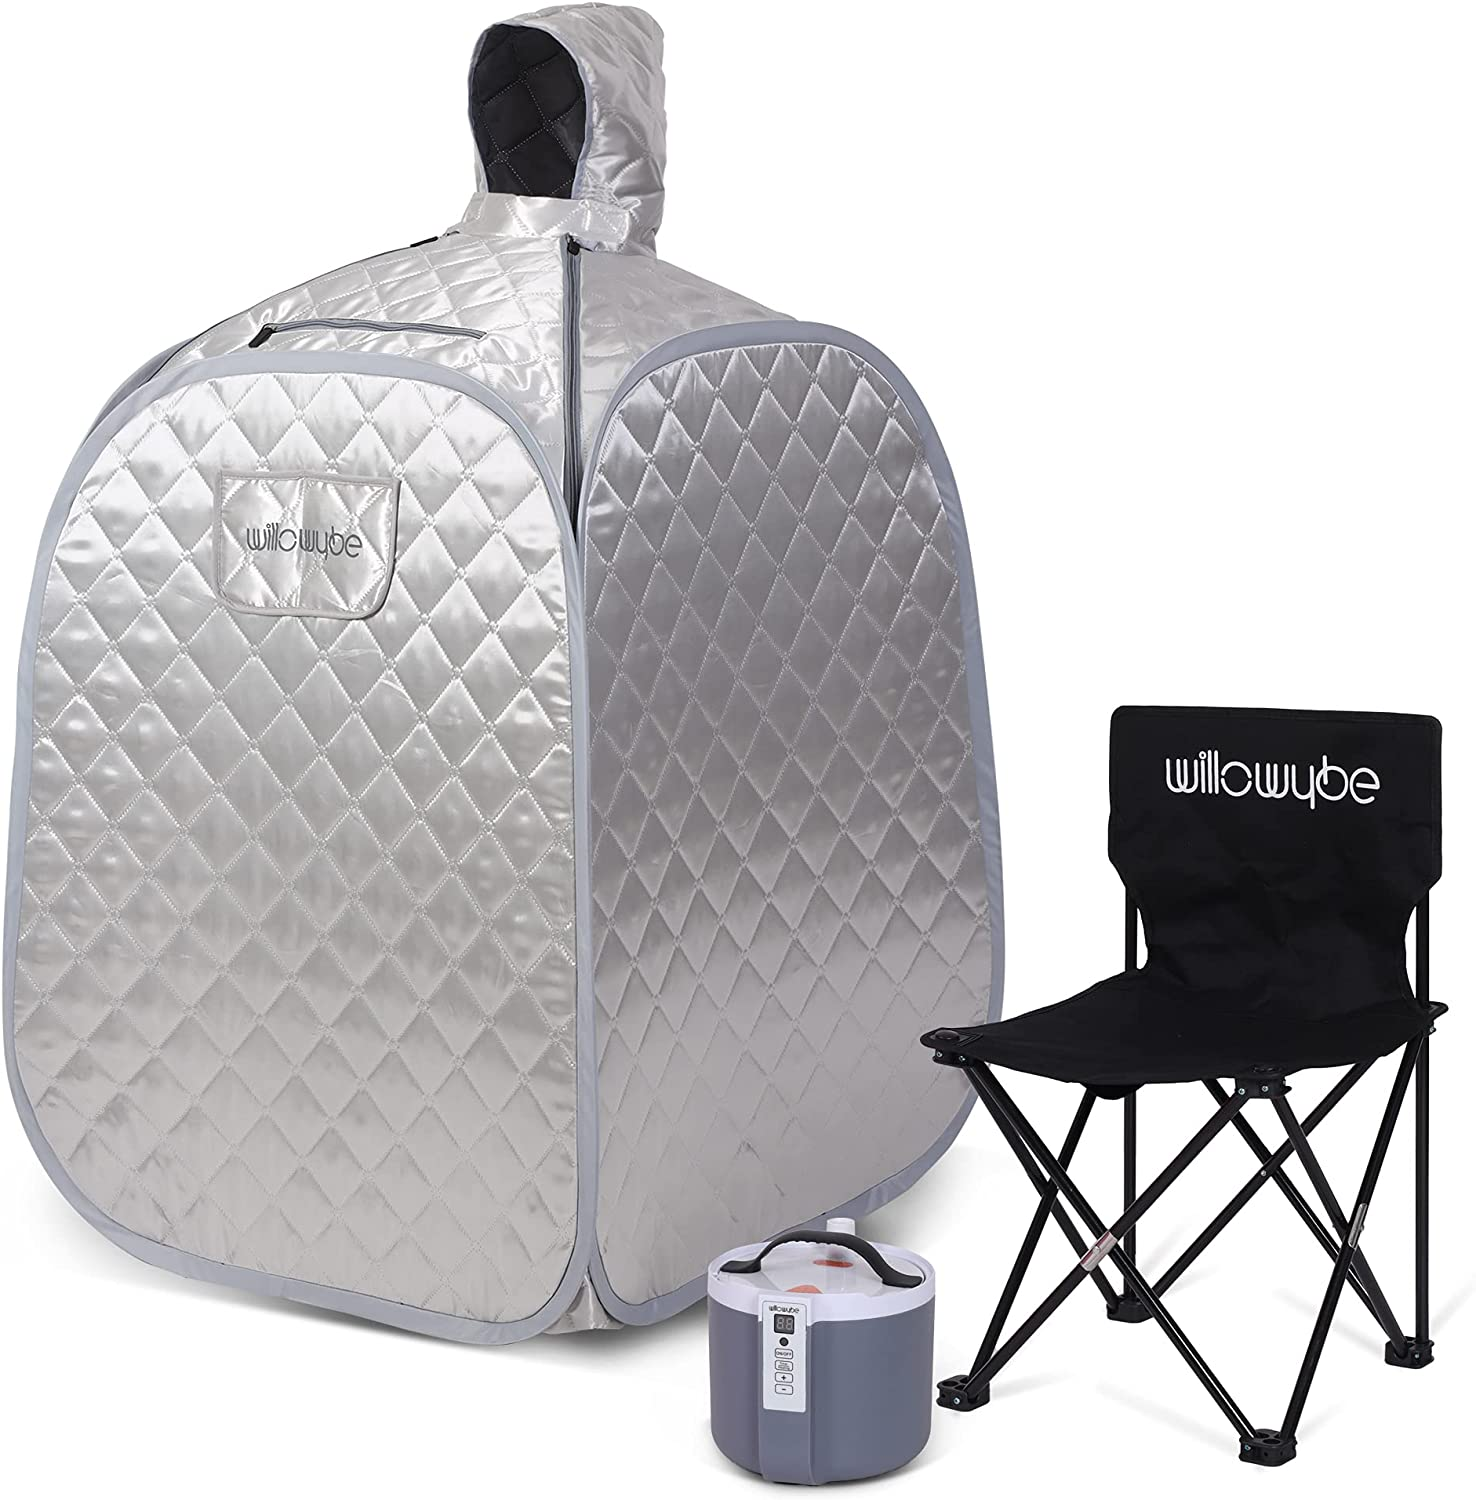 WILLOWYBE Portable Steam Personal Saunas at Home for Detox, Full Body Suna Room with Chair, Remote Control, Silver Prime